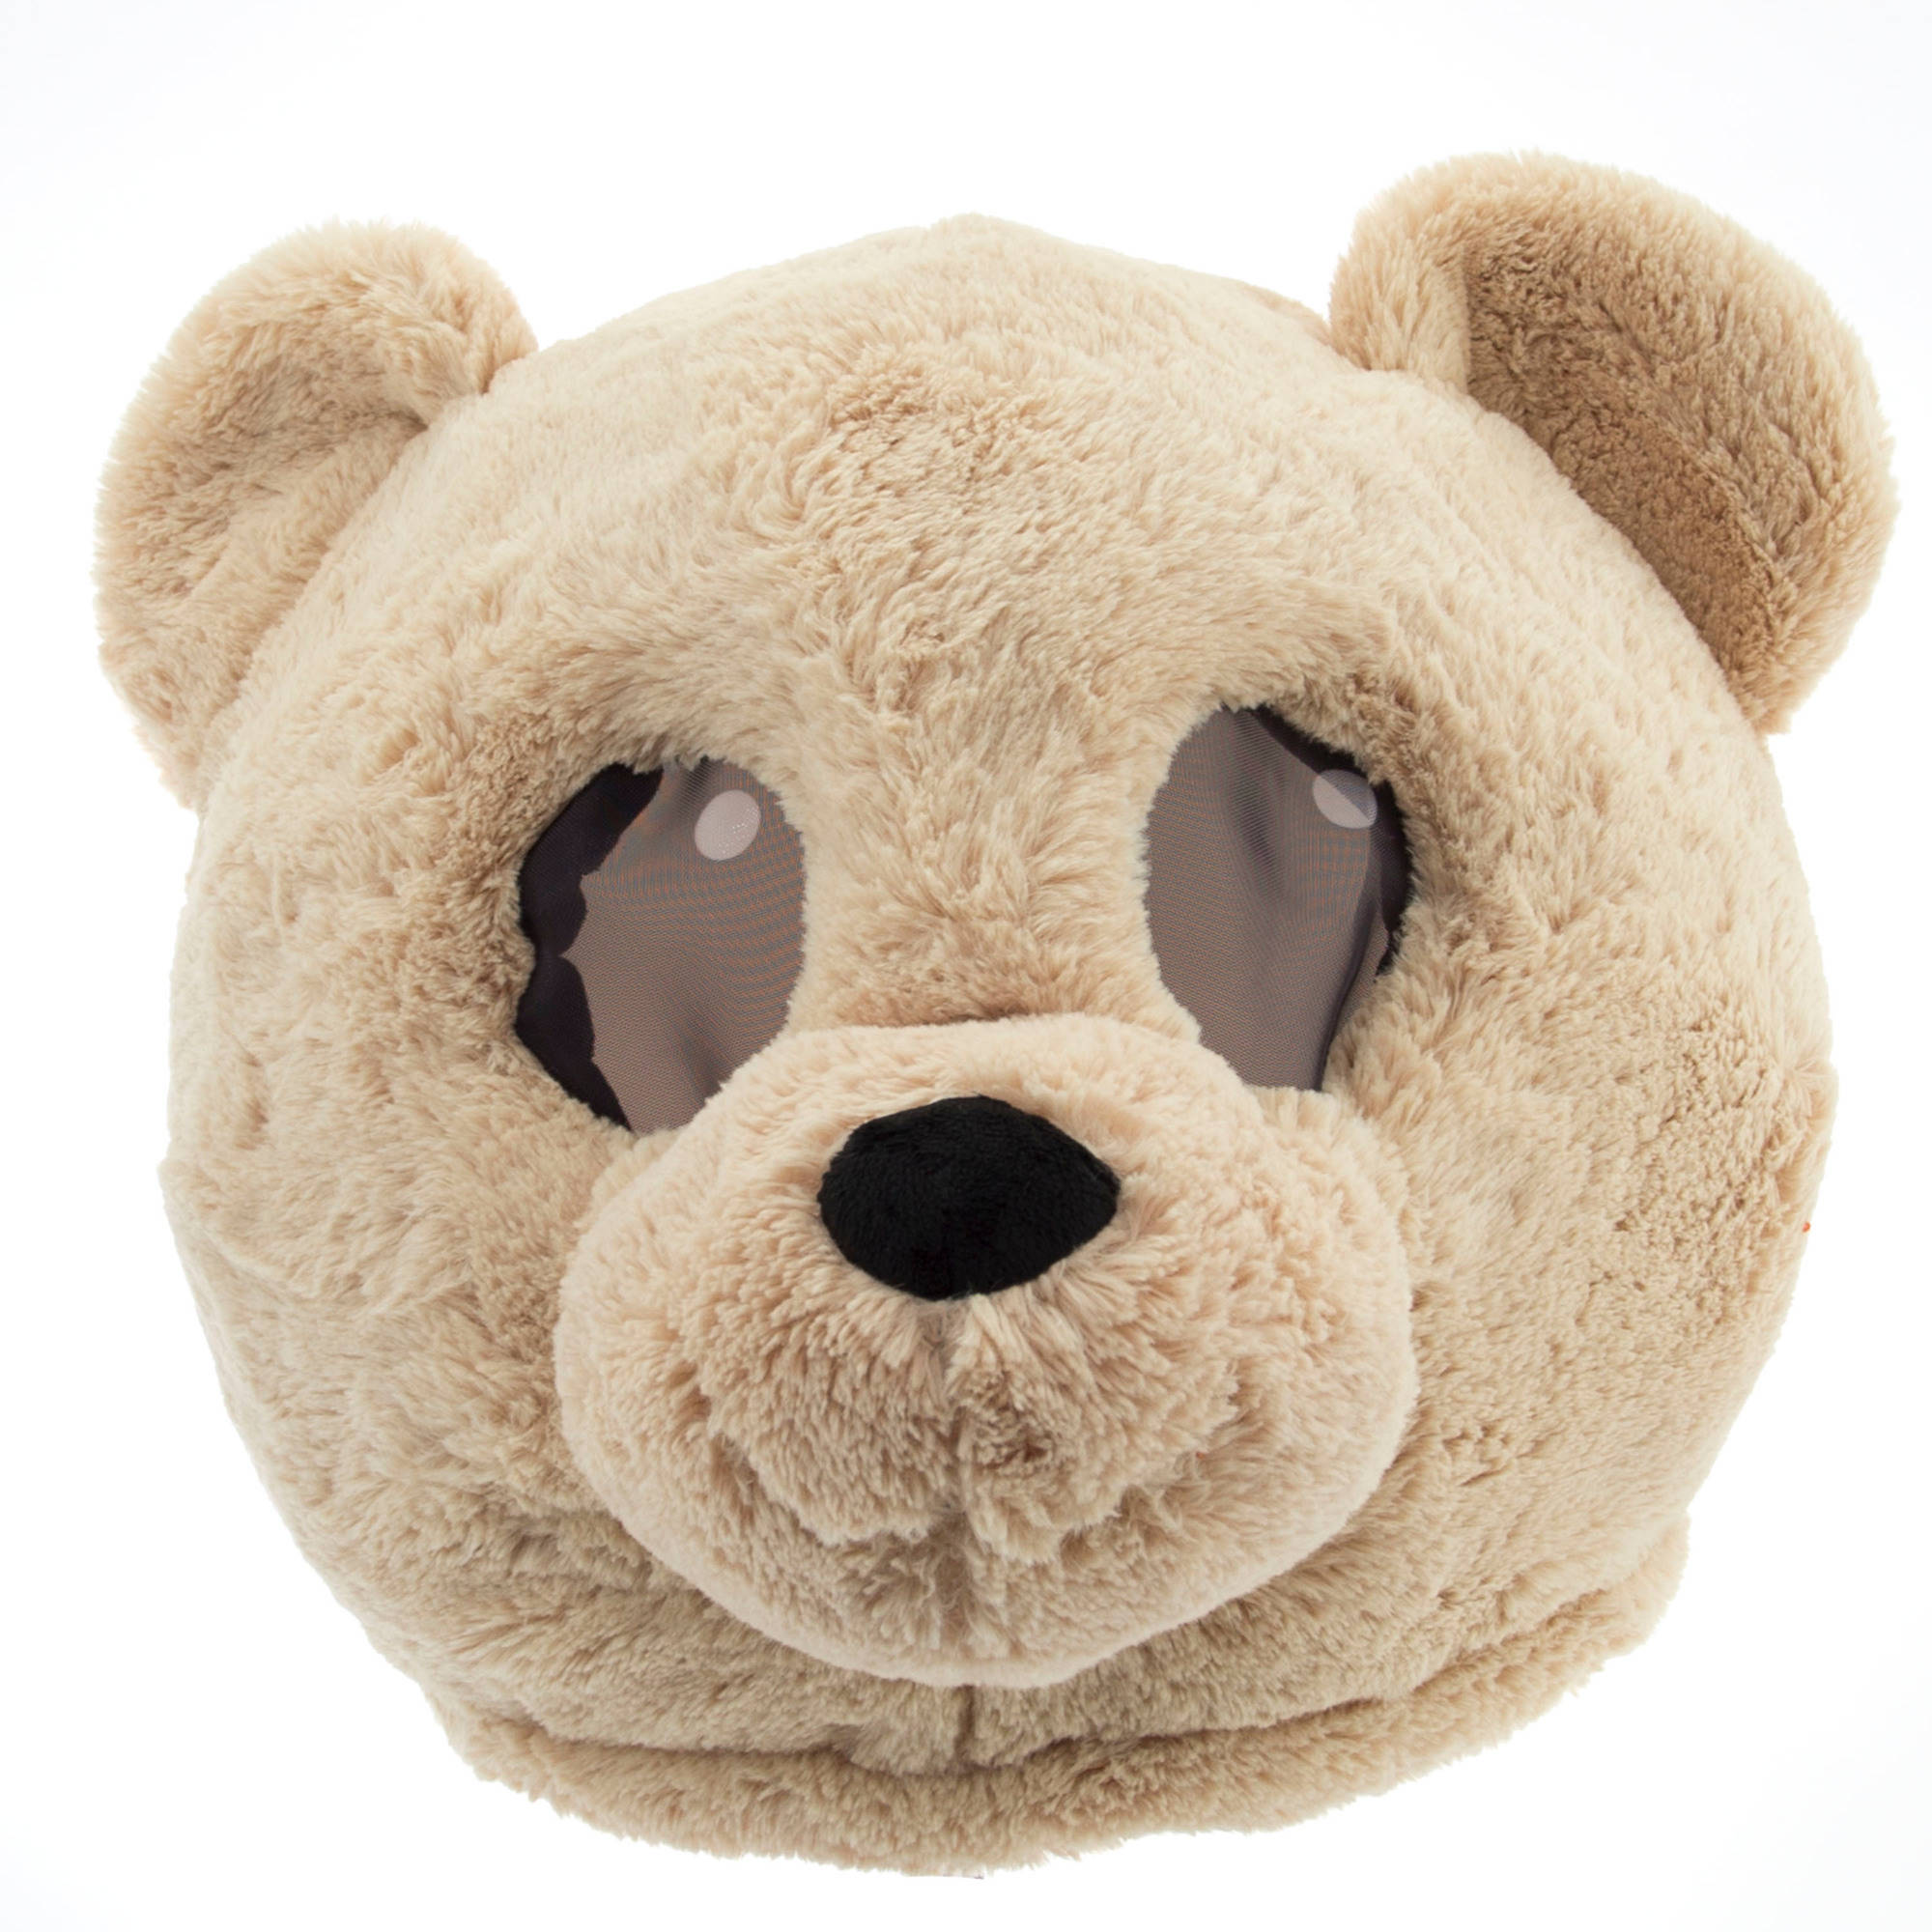 Tan Teddy Maskimal: Adorable Large Plush Head Mask